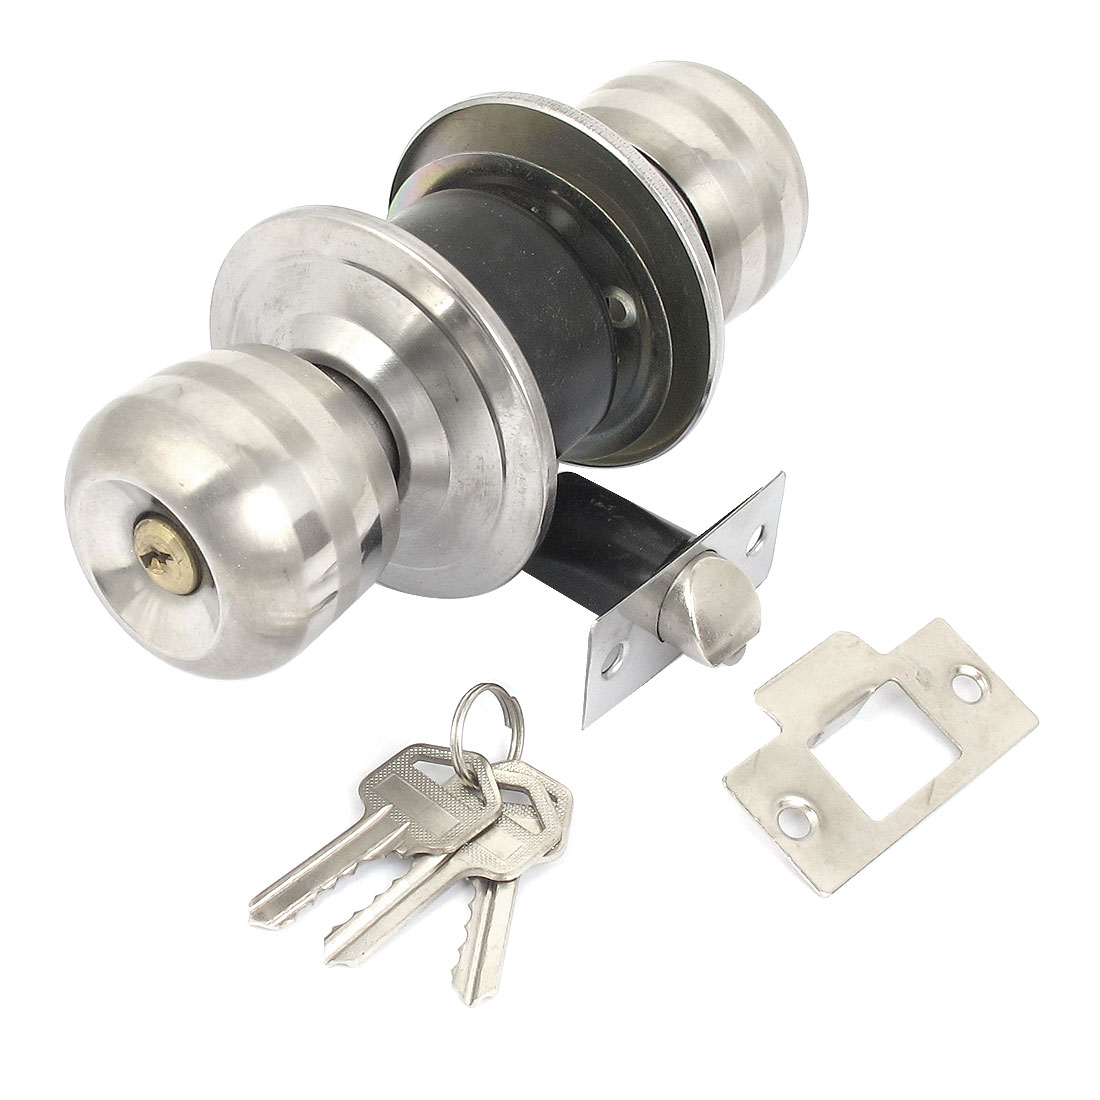 Home Office Door Cylinder Deadbolts Ball Knob Locking Latch Silver Tone w 3 Keys